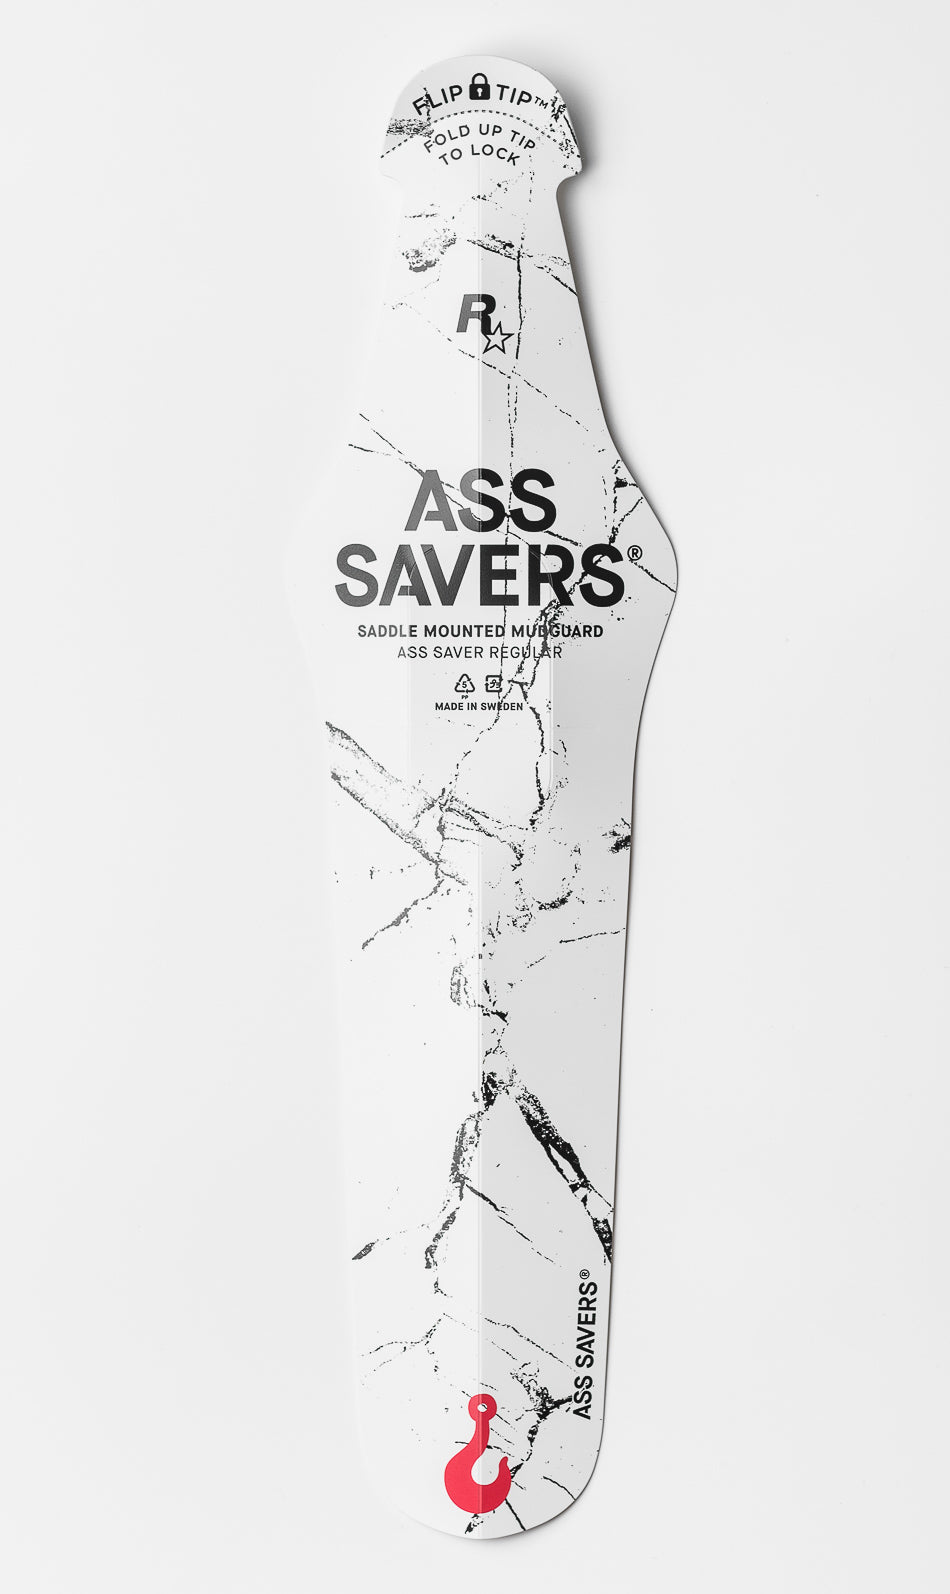 ASS SAVER Regular X RHC 2018